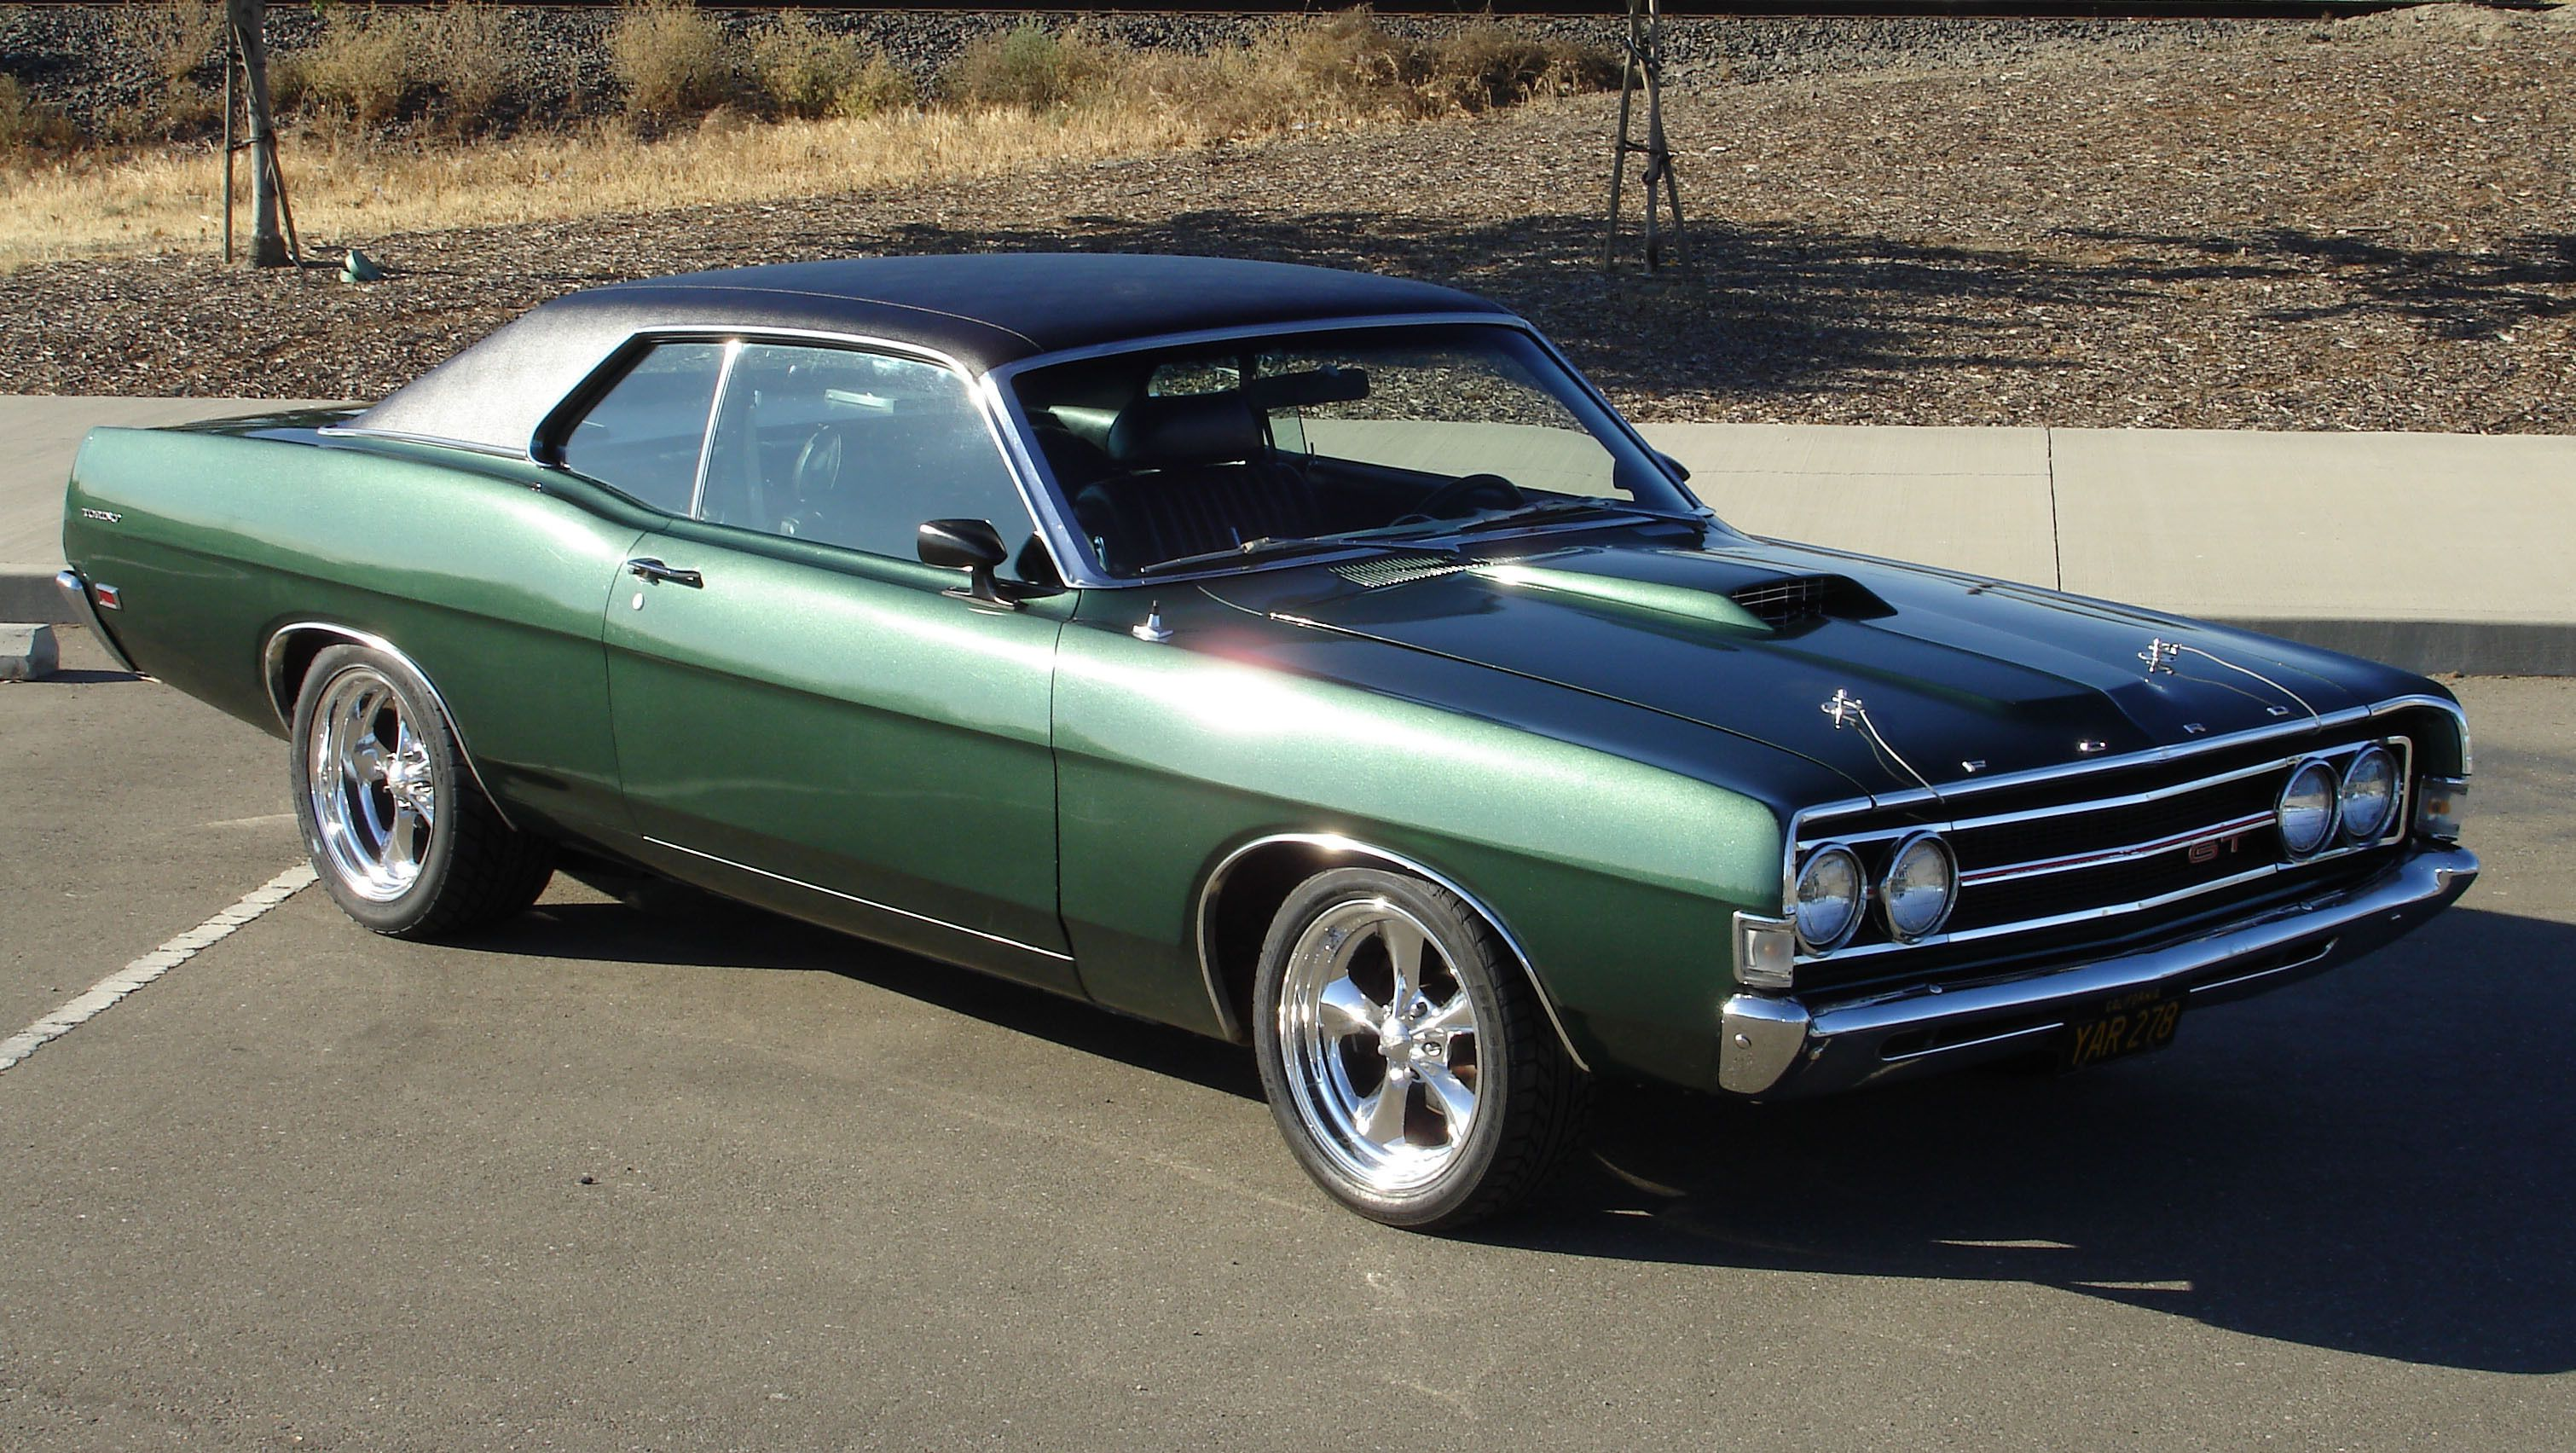 1972 mercury montego n code 429 restomod motorcycle custom - Hot Cars